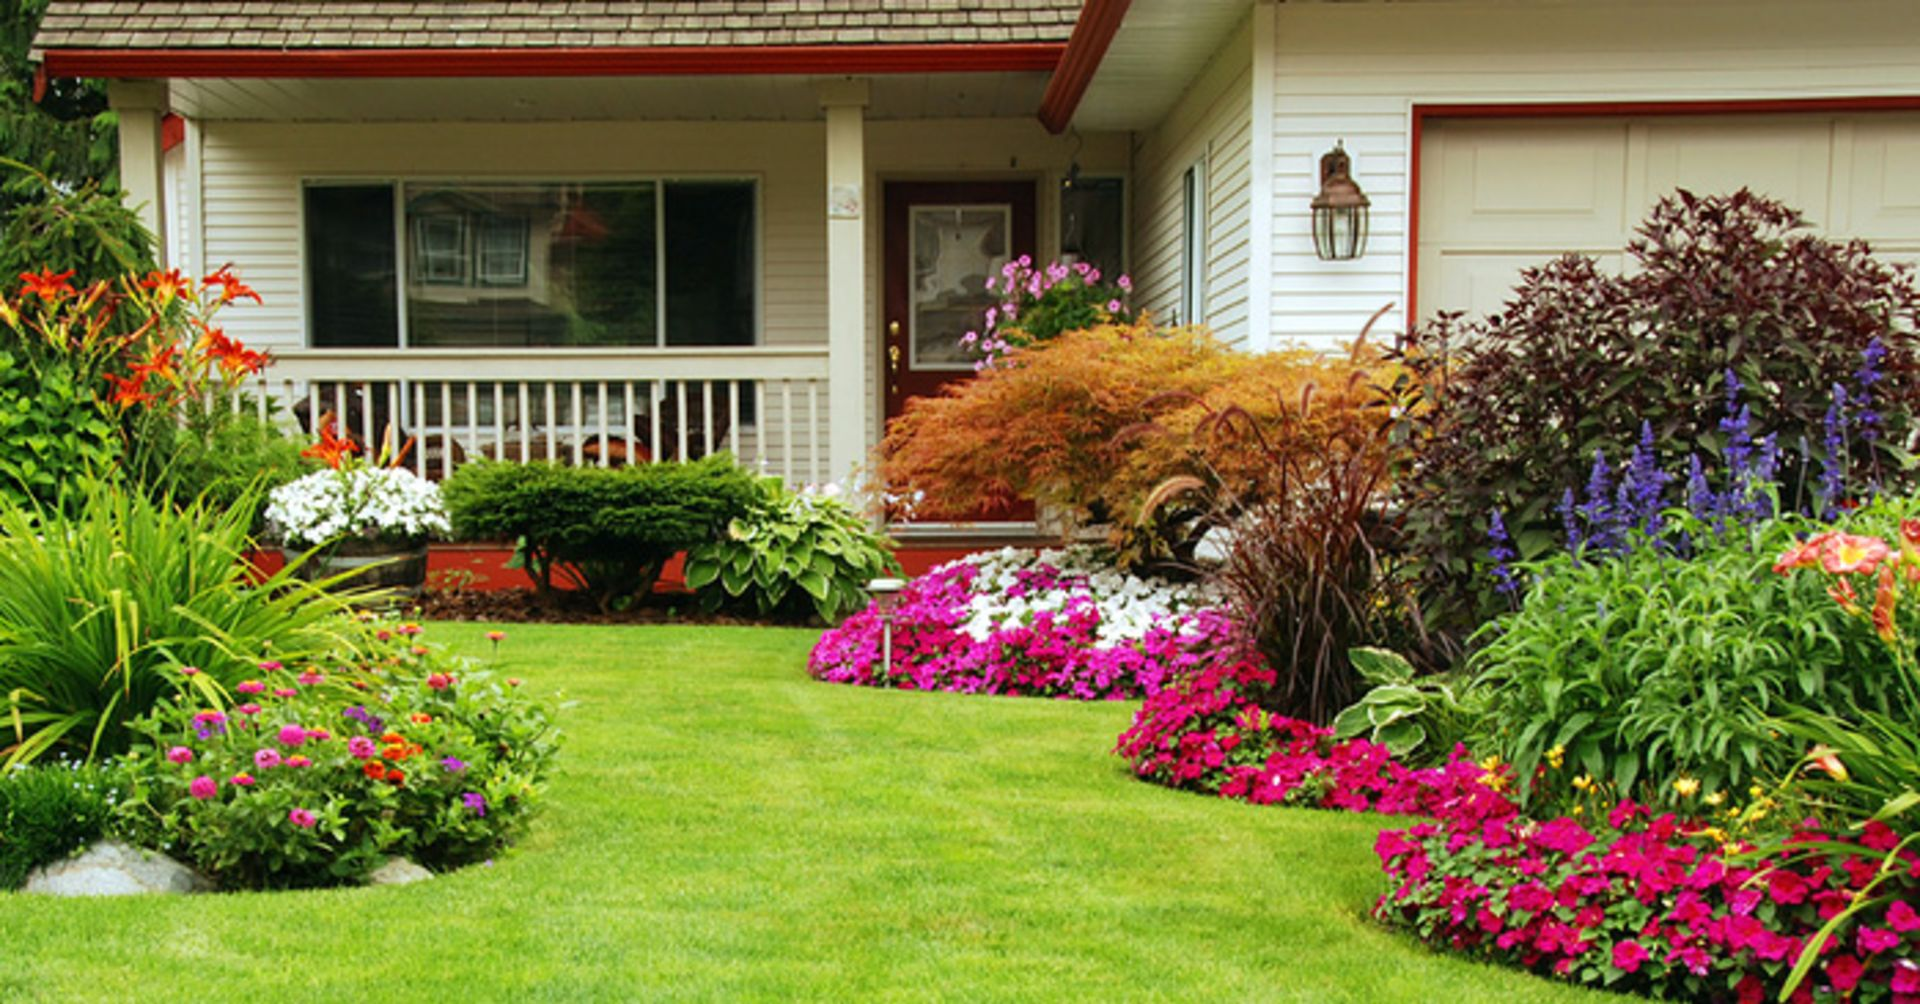 Upcoming Spring Season Set To Be Most Competitive Housing Market Since Recession, Says Expert